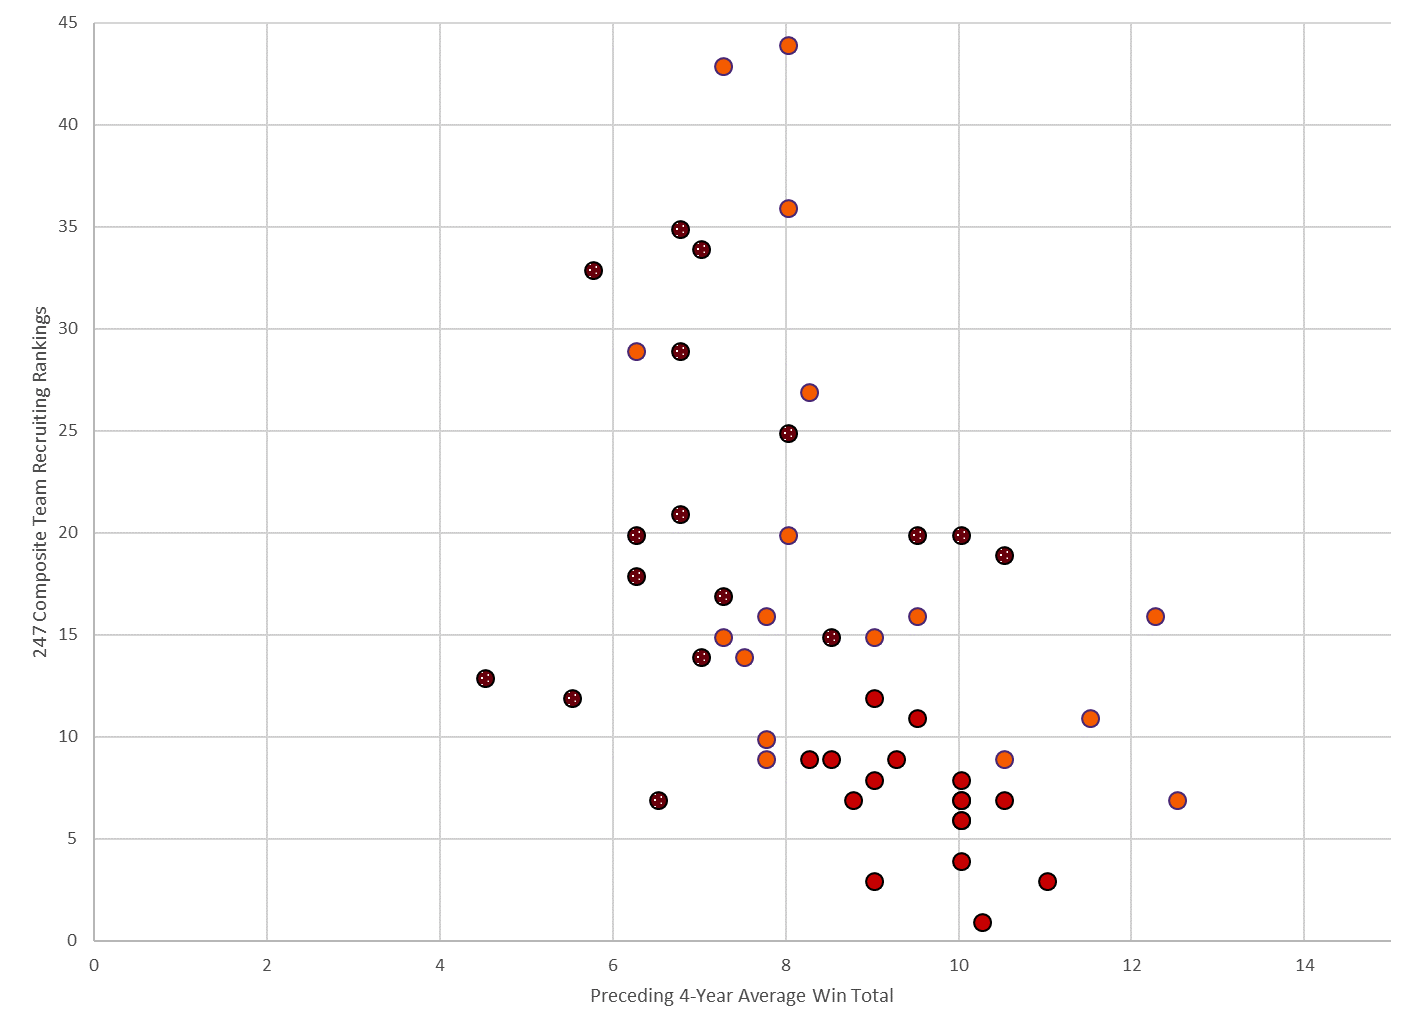 Figure 12. 247 Composite Team Recruiting Rankings for South Carolina, Georgia, and Clemson each year over the period 2002-2018 vs each team's average win total for the preceding four years.